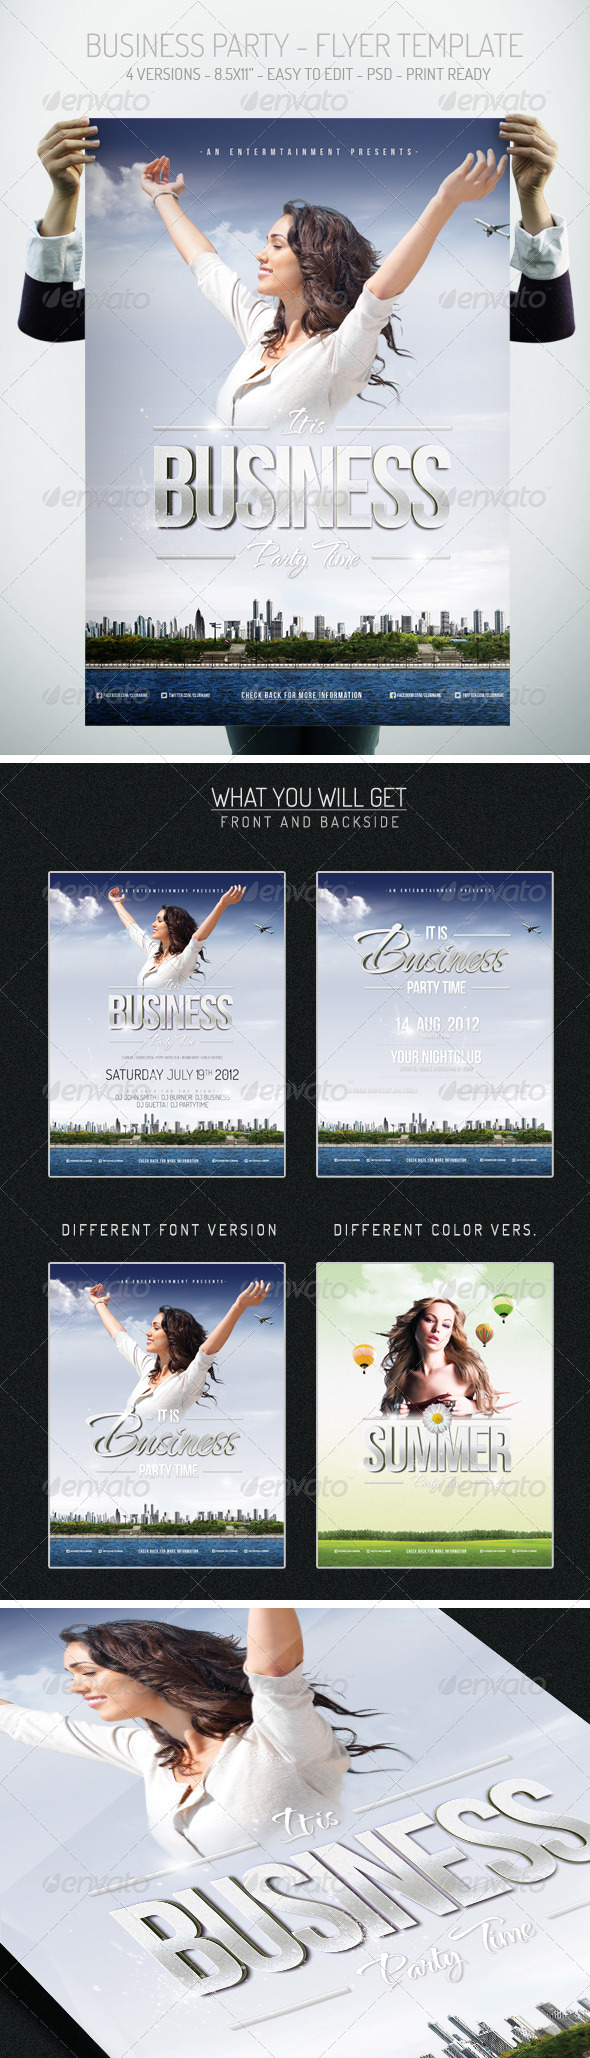 Business Party - Flyer Template - Clubs & Parties Events